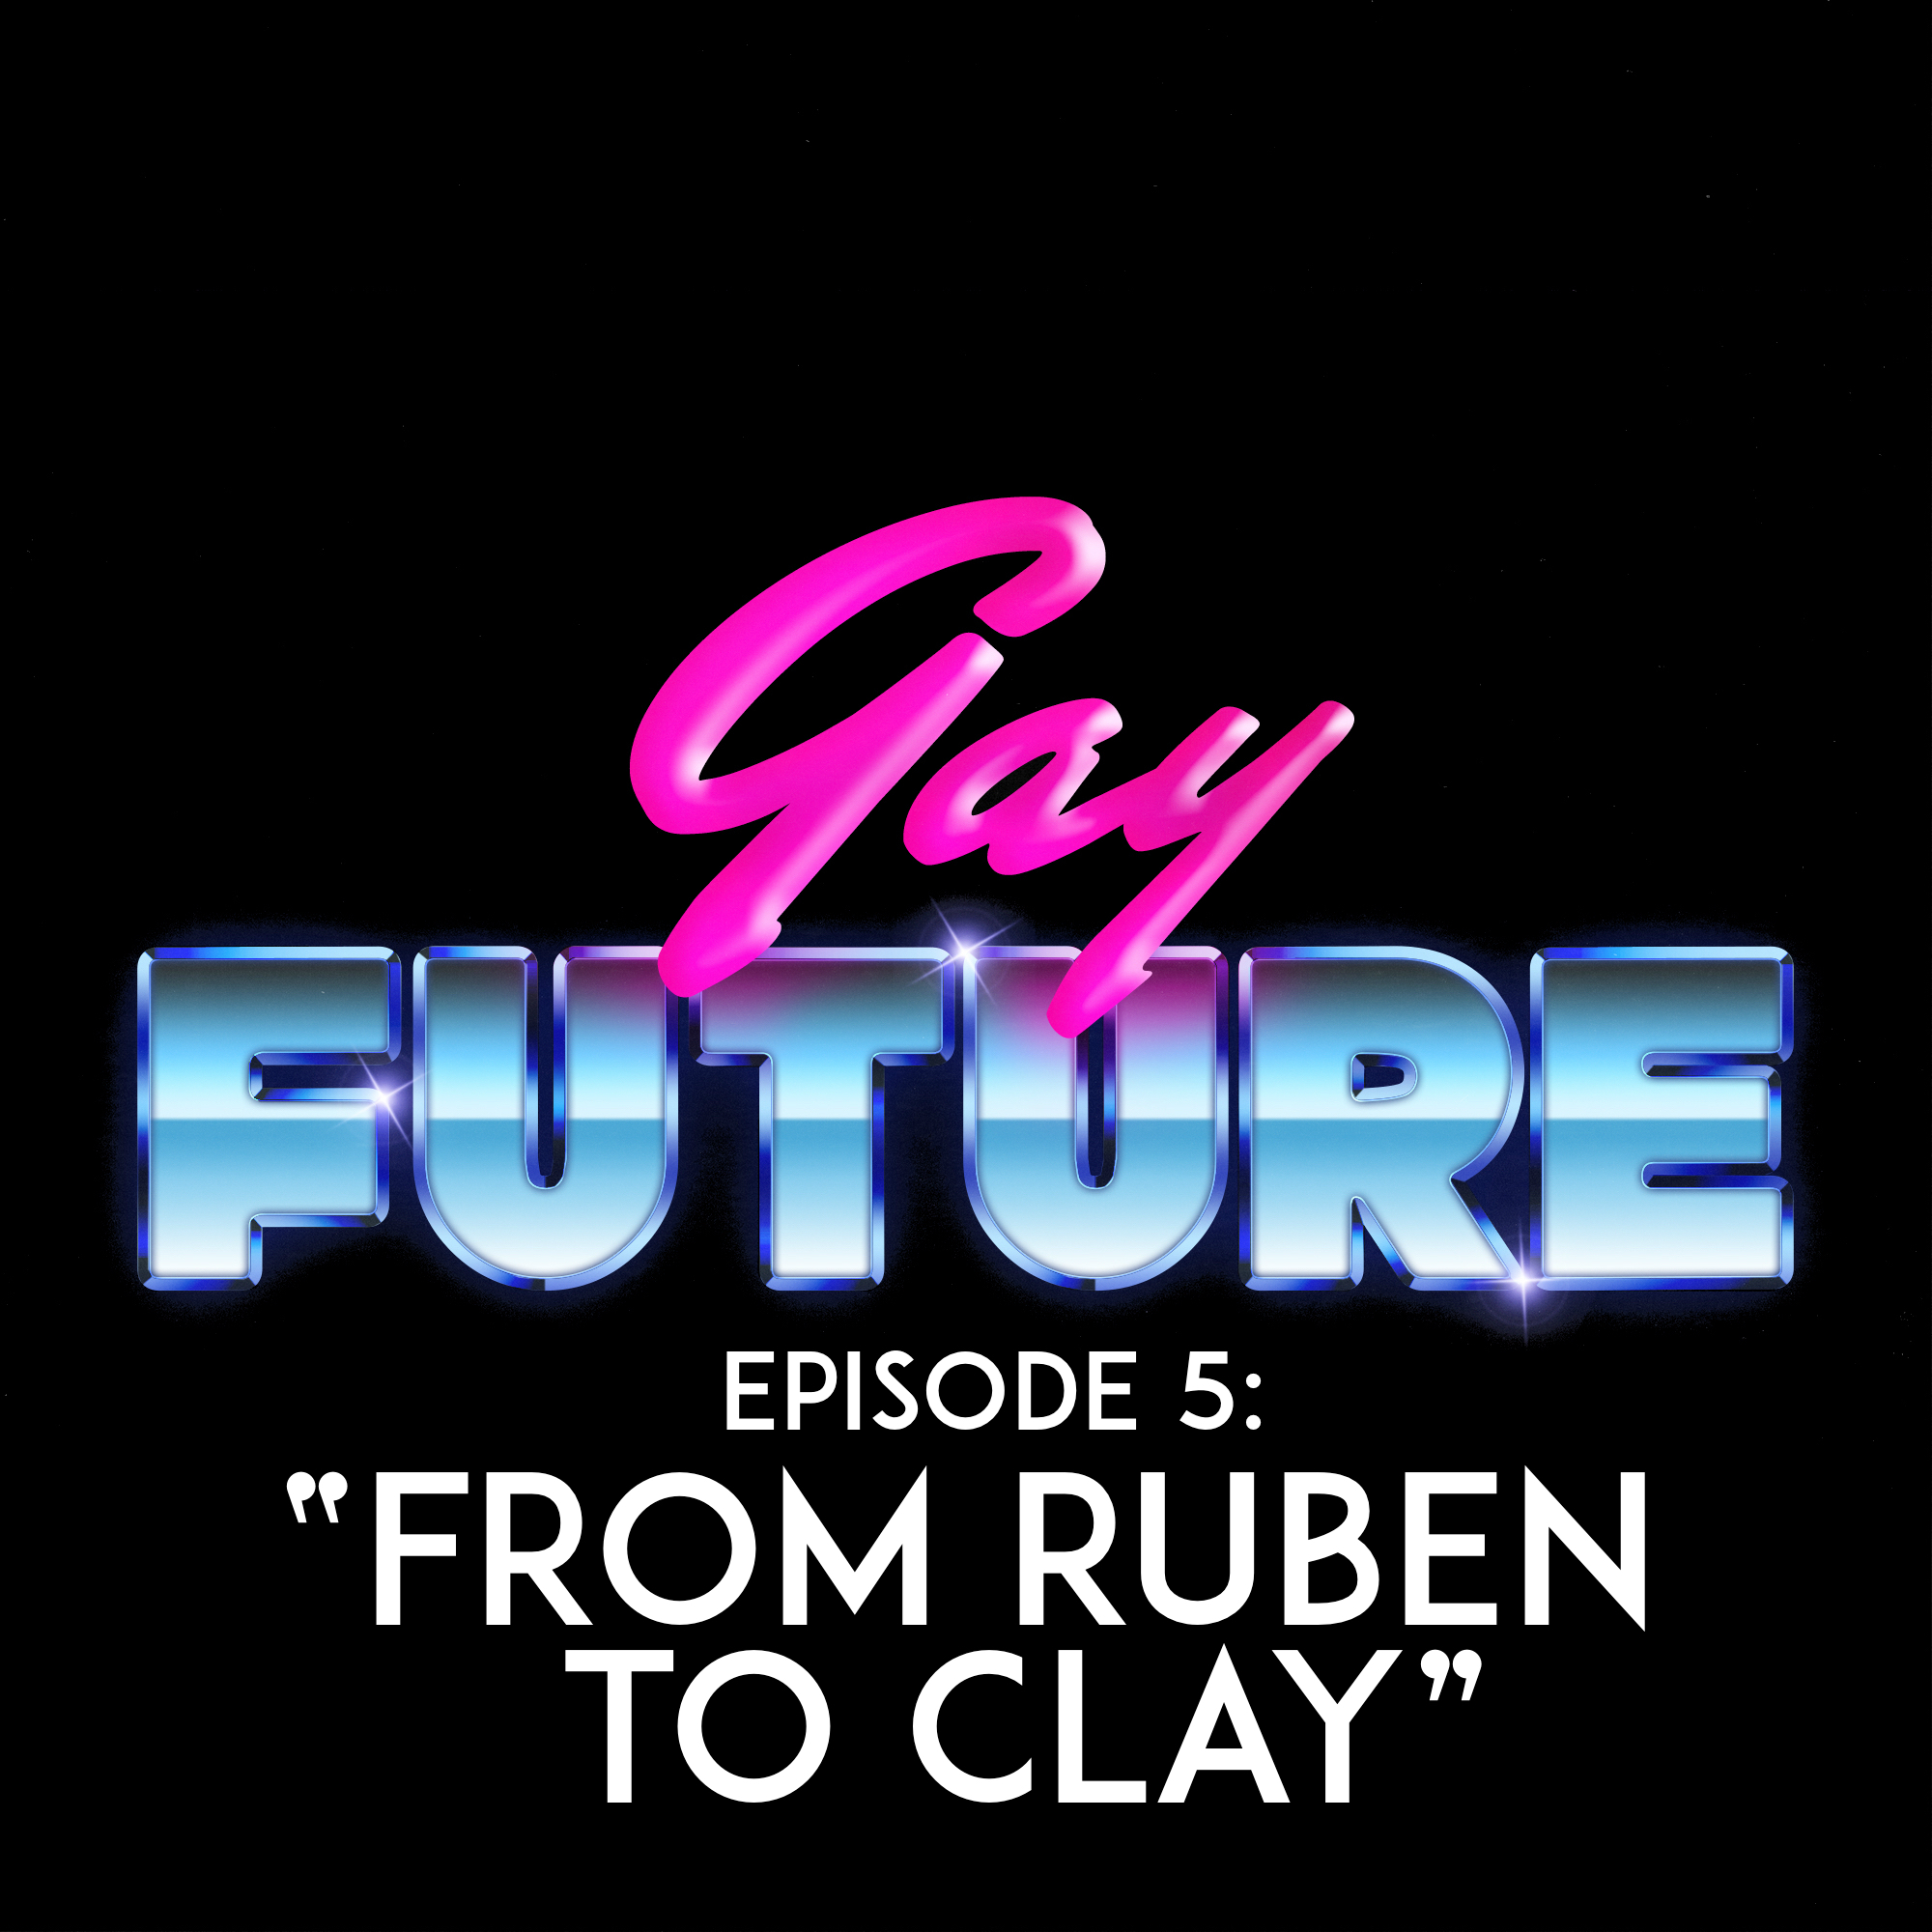 EPISODE 5: FROM RUBEN TO CLAY   The year is 2019, and everyone is kinda gay, kinda straight. It's fluid.  A young Clay Aiken meets a new ally to jumpstart his career and teams up with an old friend from his past…